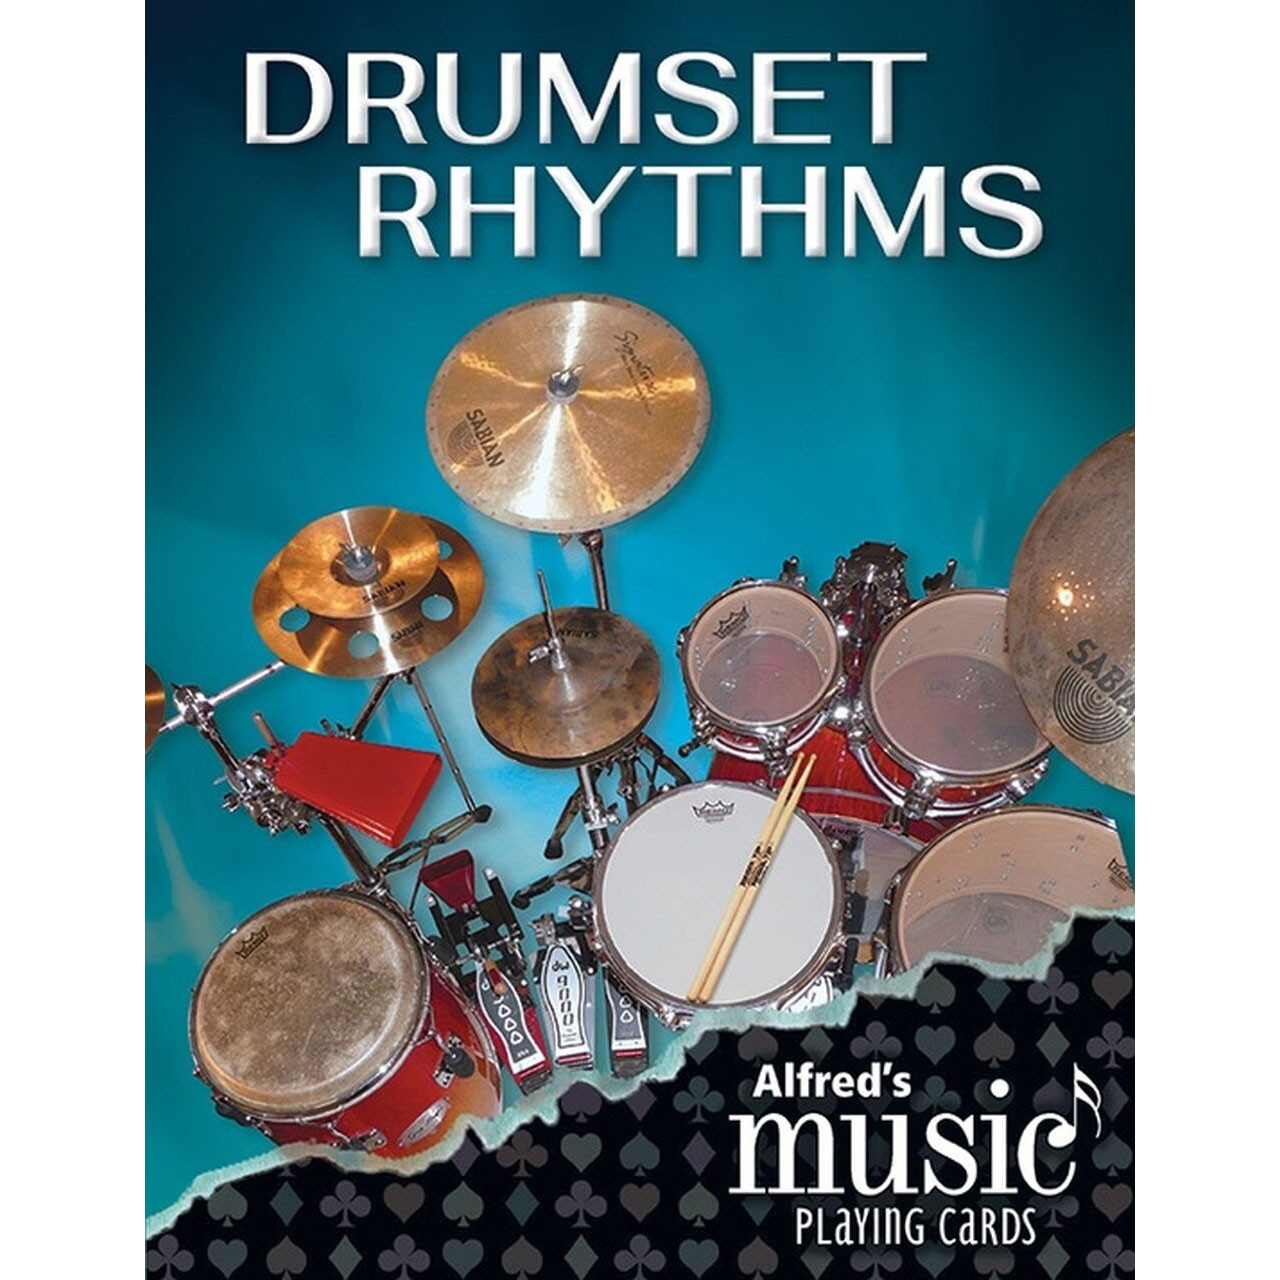 Alfred Music Publishing Drumset Rhythms Playing Cards Deck